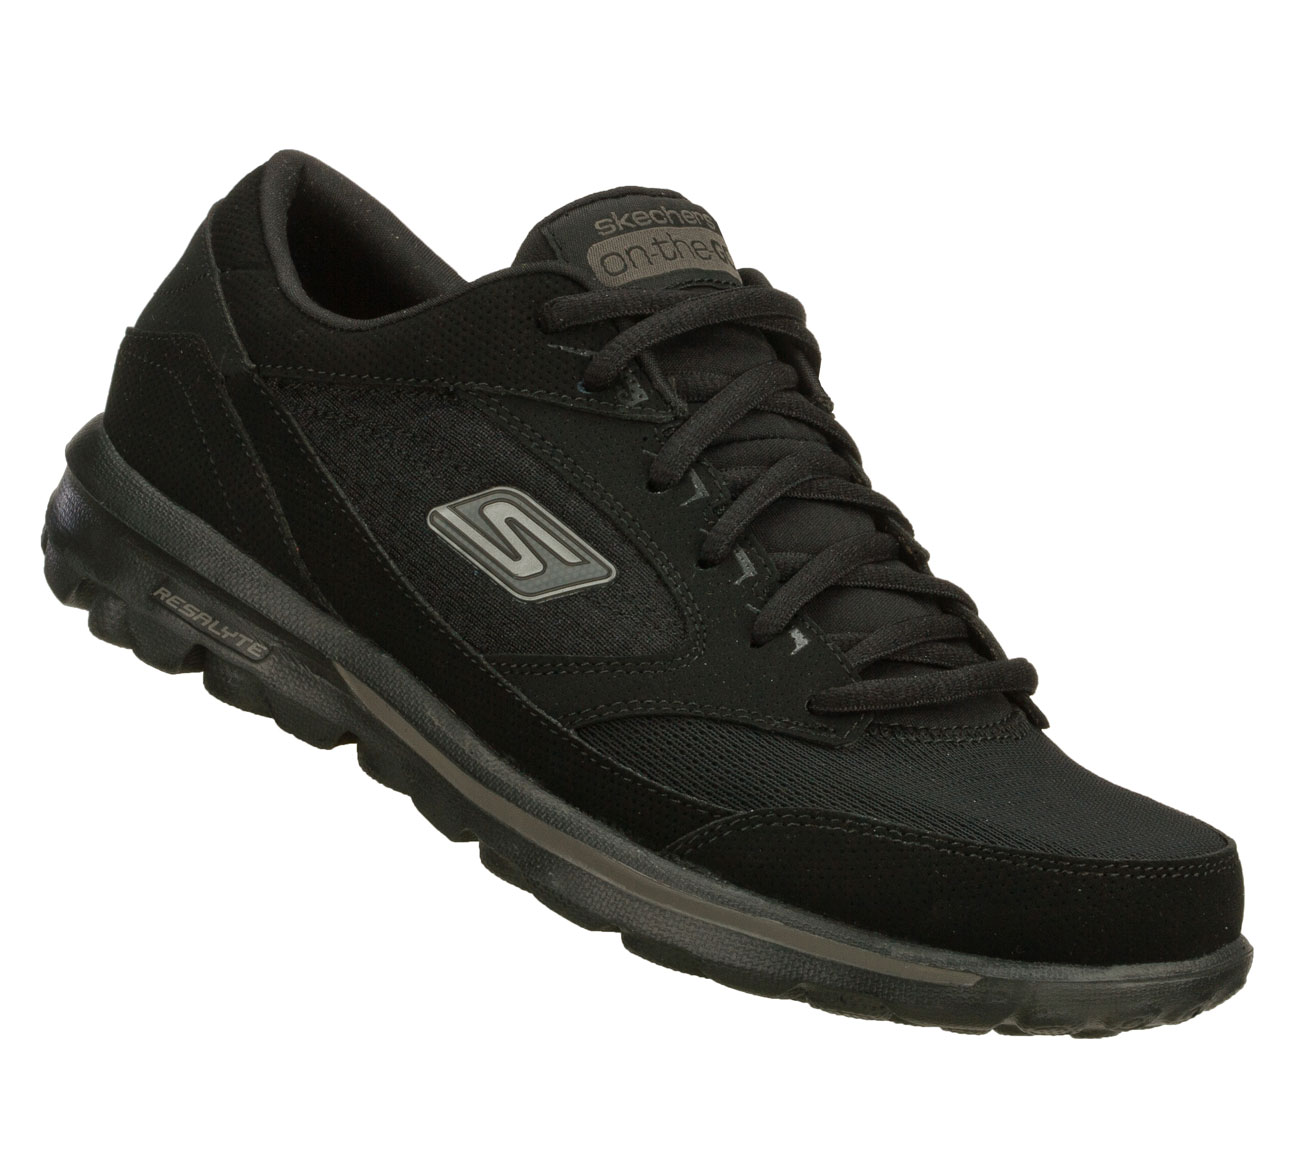 Tus OtSkechers On Y The Confort En GoComodidad PiesAntonio f7yvIgYb6m